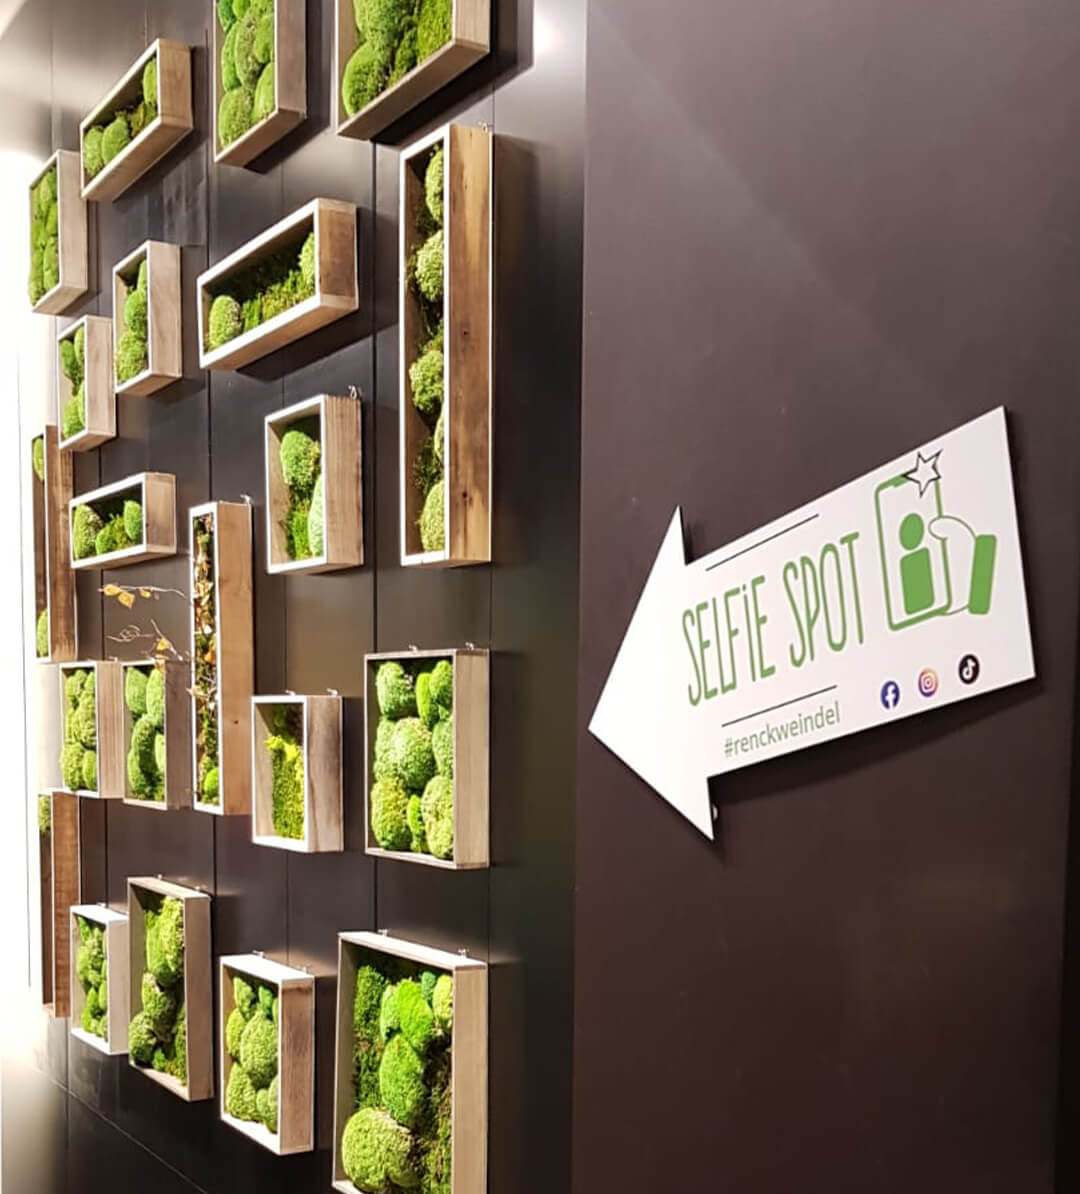 Selfie Wall - Renck-Weindel Outlet-Store